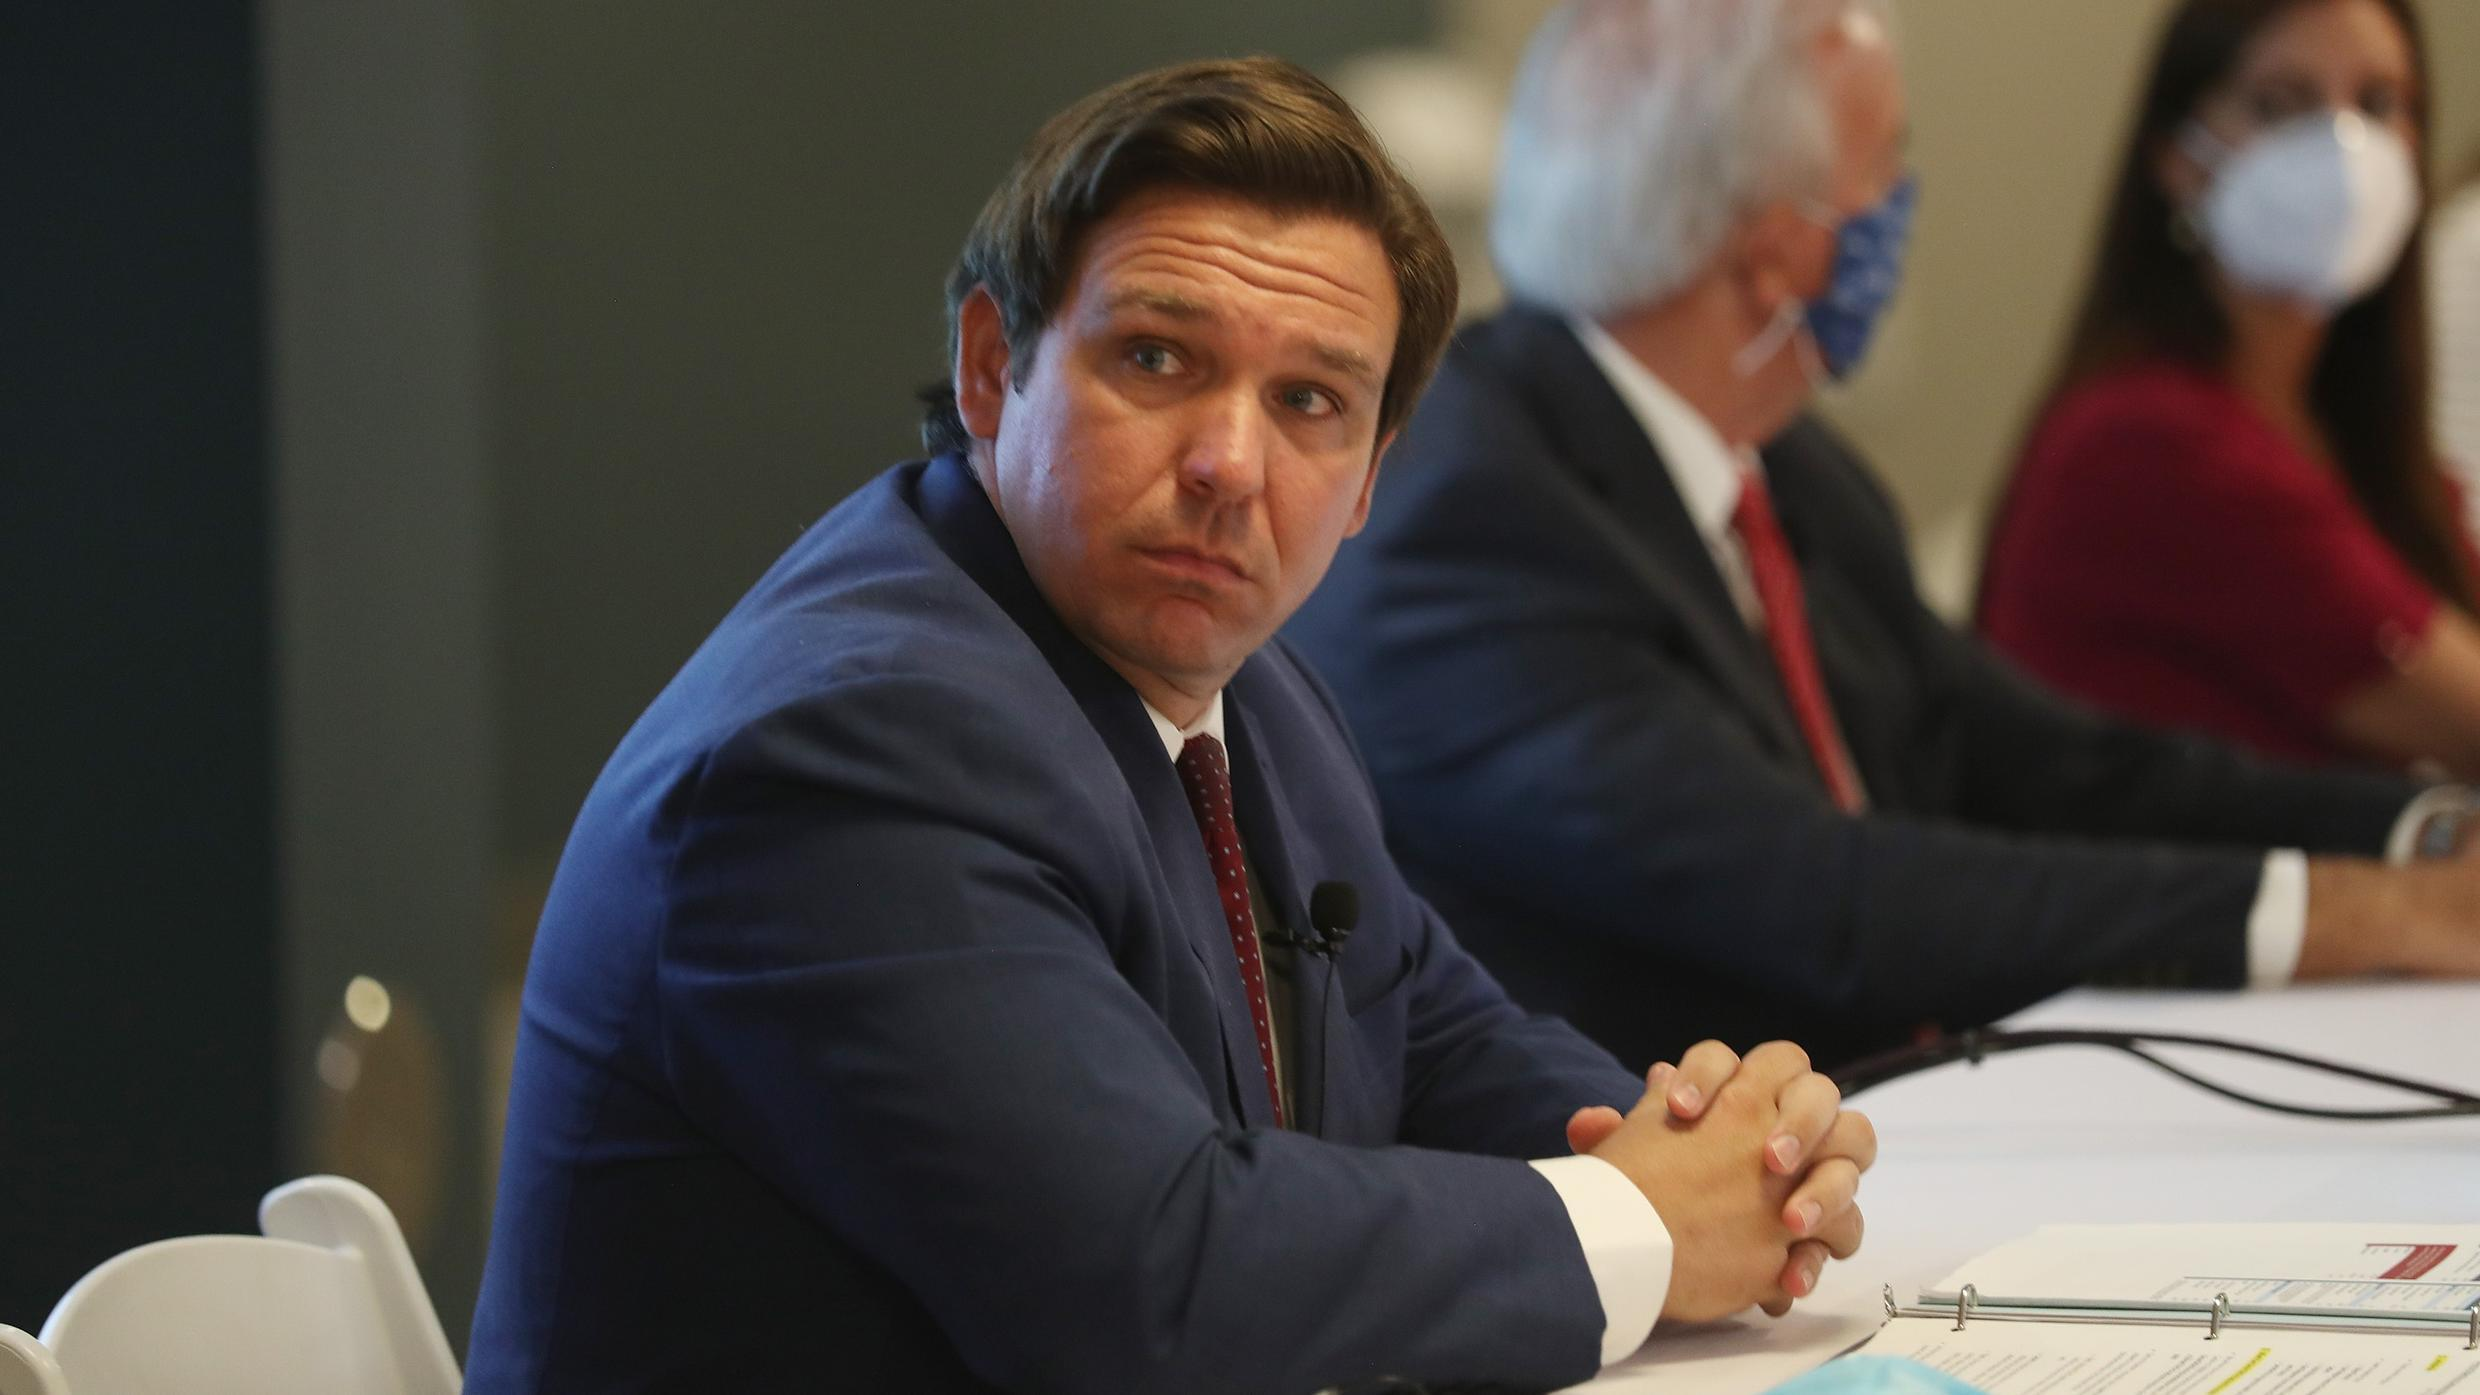 Florida Governor Ron DeSantis speaks during a press conference about the coronavirus held at the Pan American Hospital on July 07, 2020 in Miami, Florida.